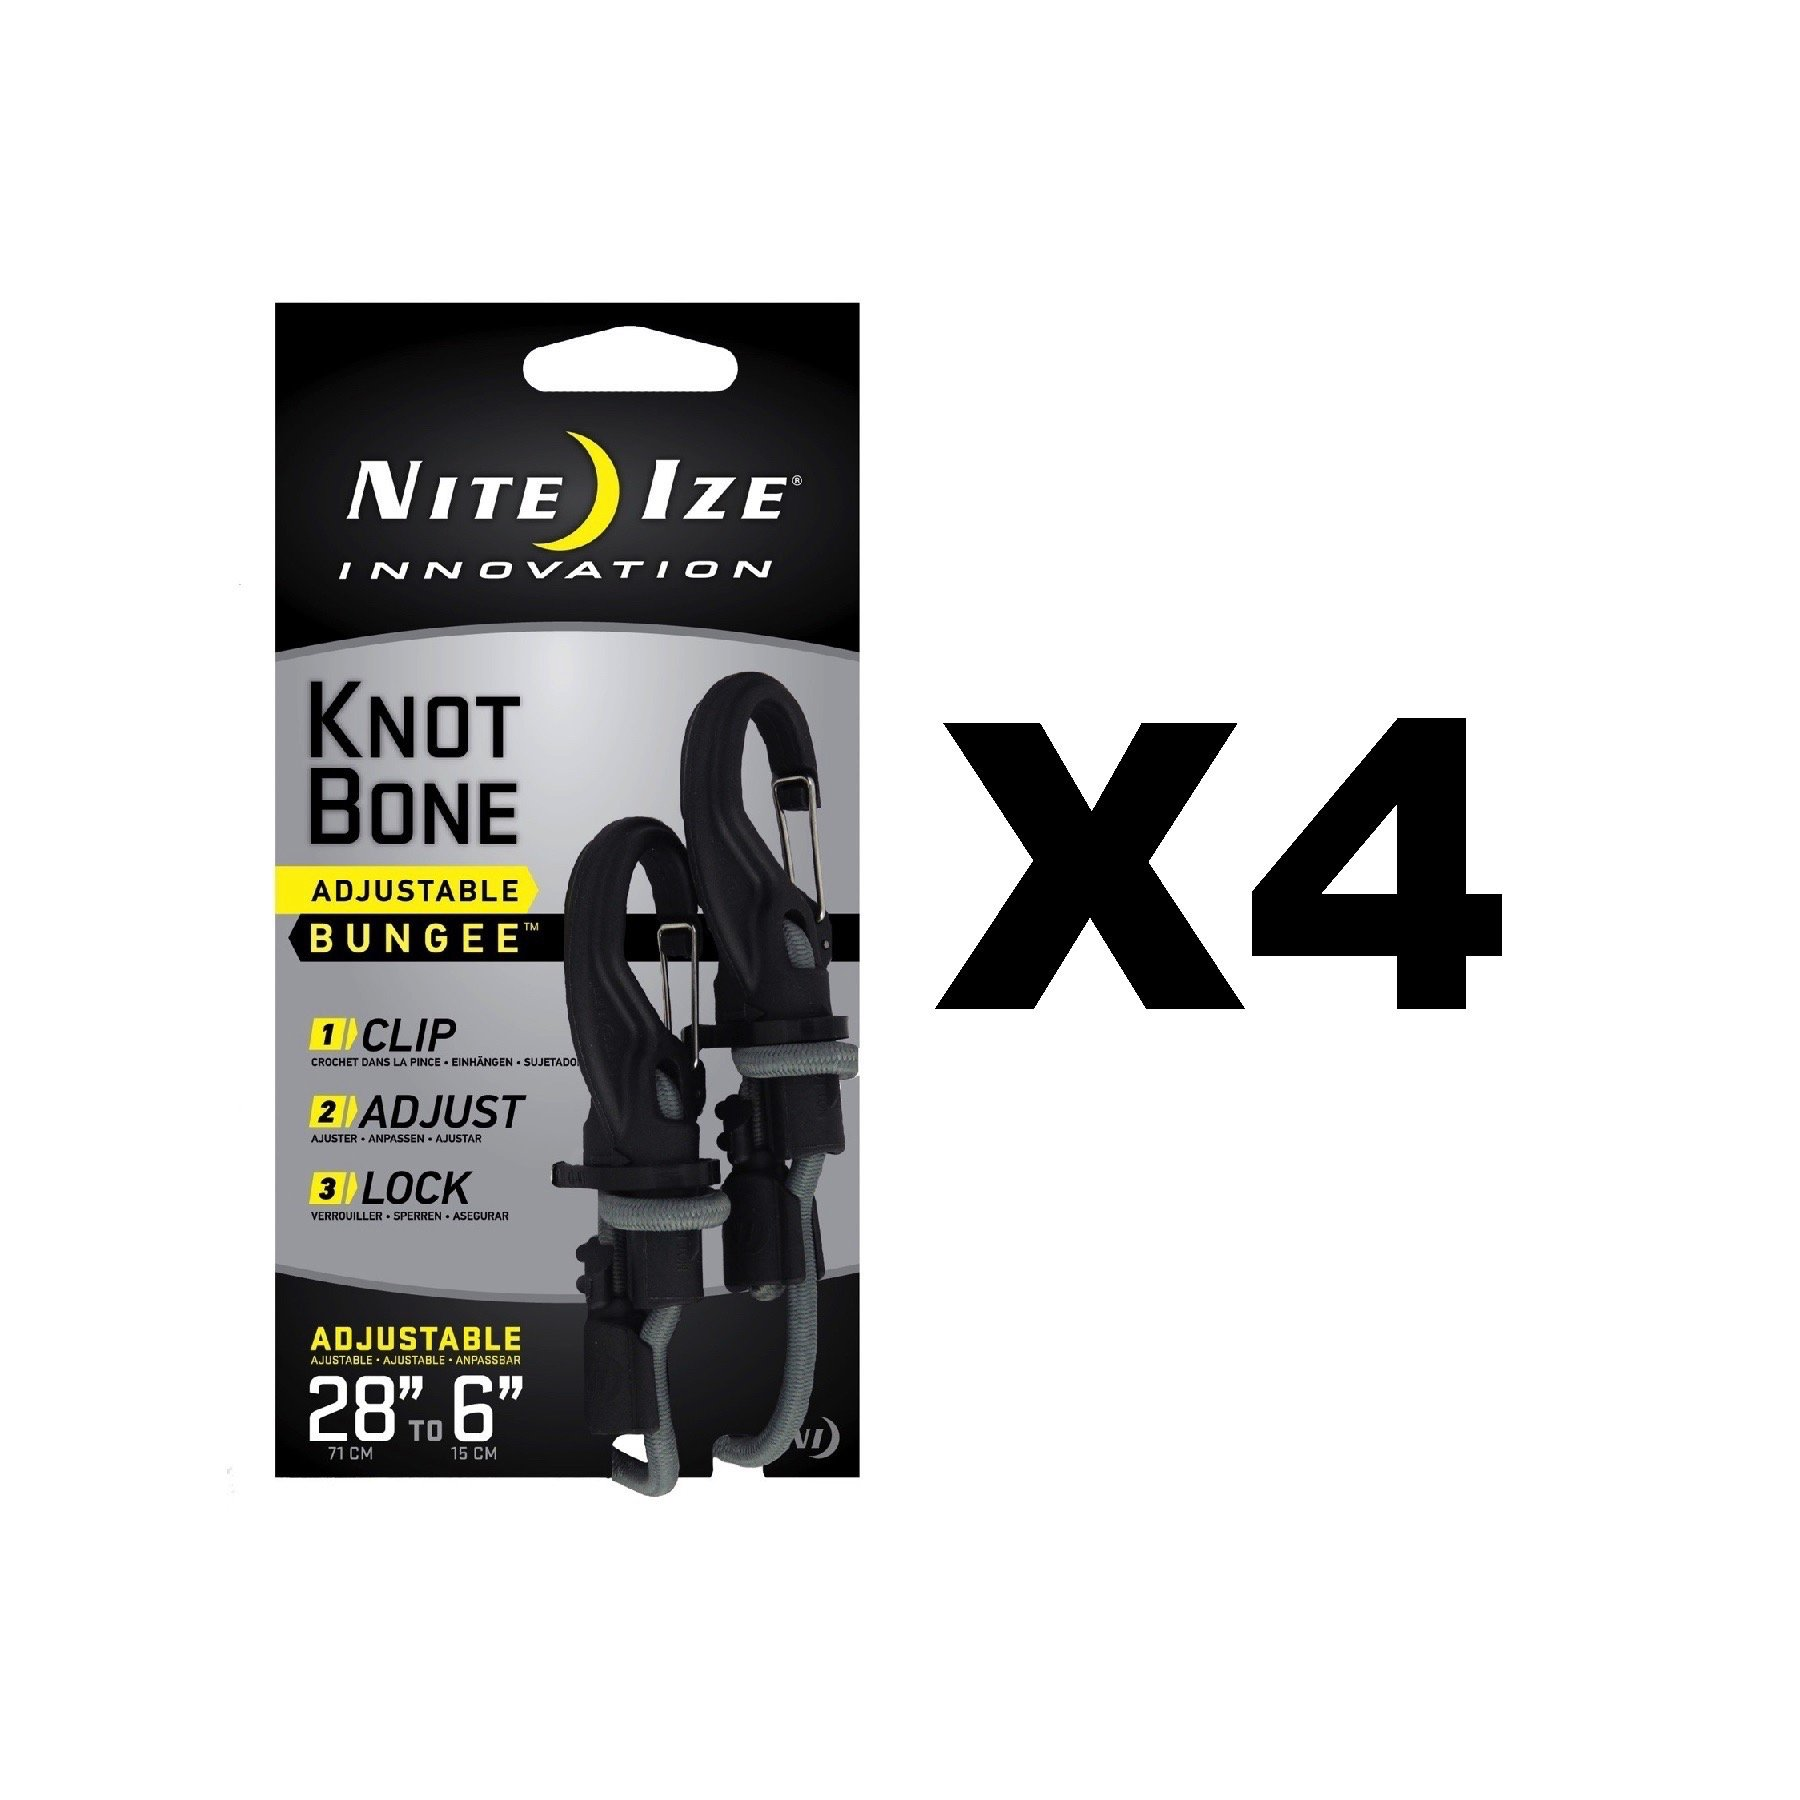 Nite Ize KnotBone Adjustable Bungee Small 5mm 6''-28'' w/ Carabiner Clip (4-Pack)